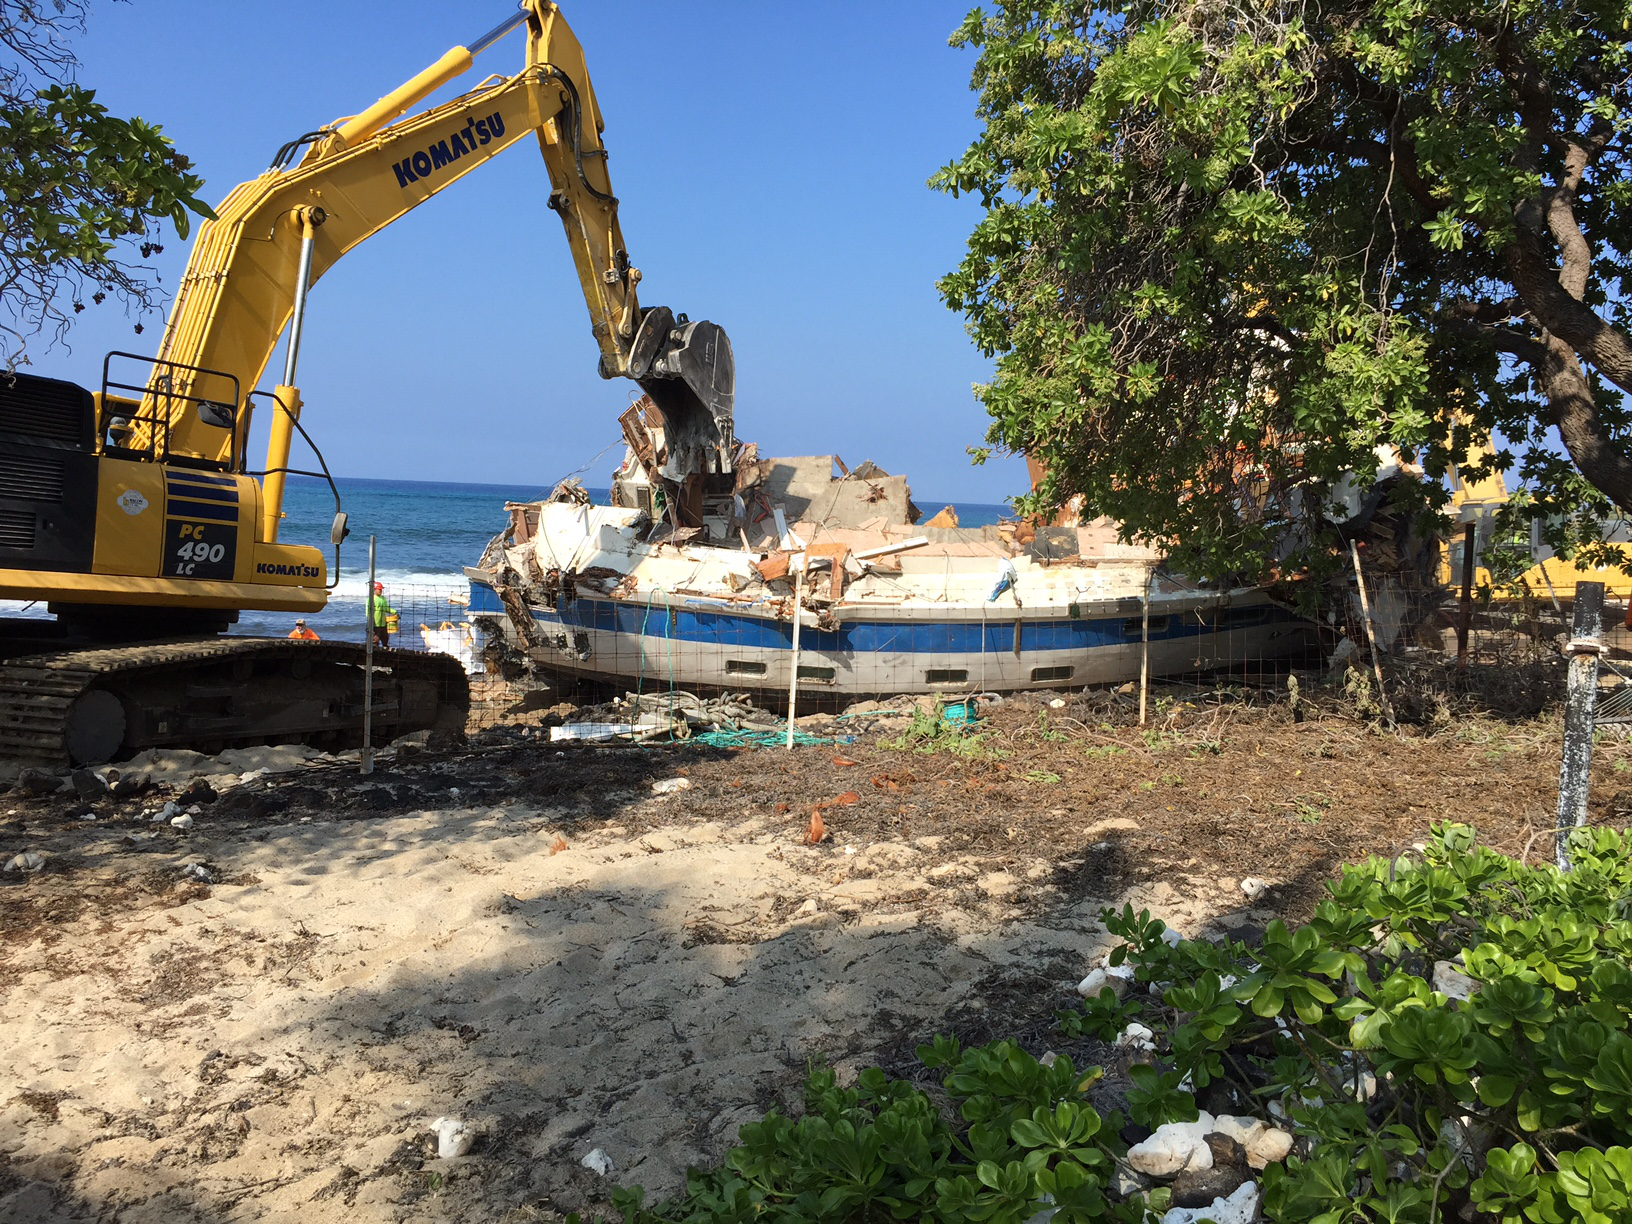 VIDEO: Grounded Hawaii Aloha Boat Removed From Kona Waters